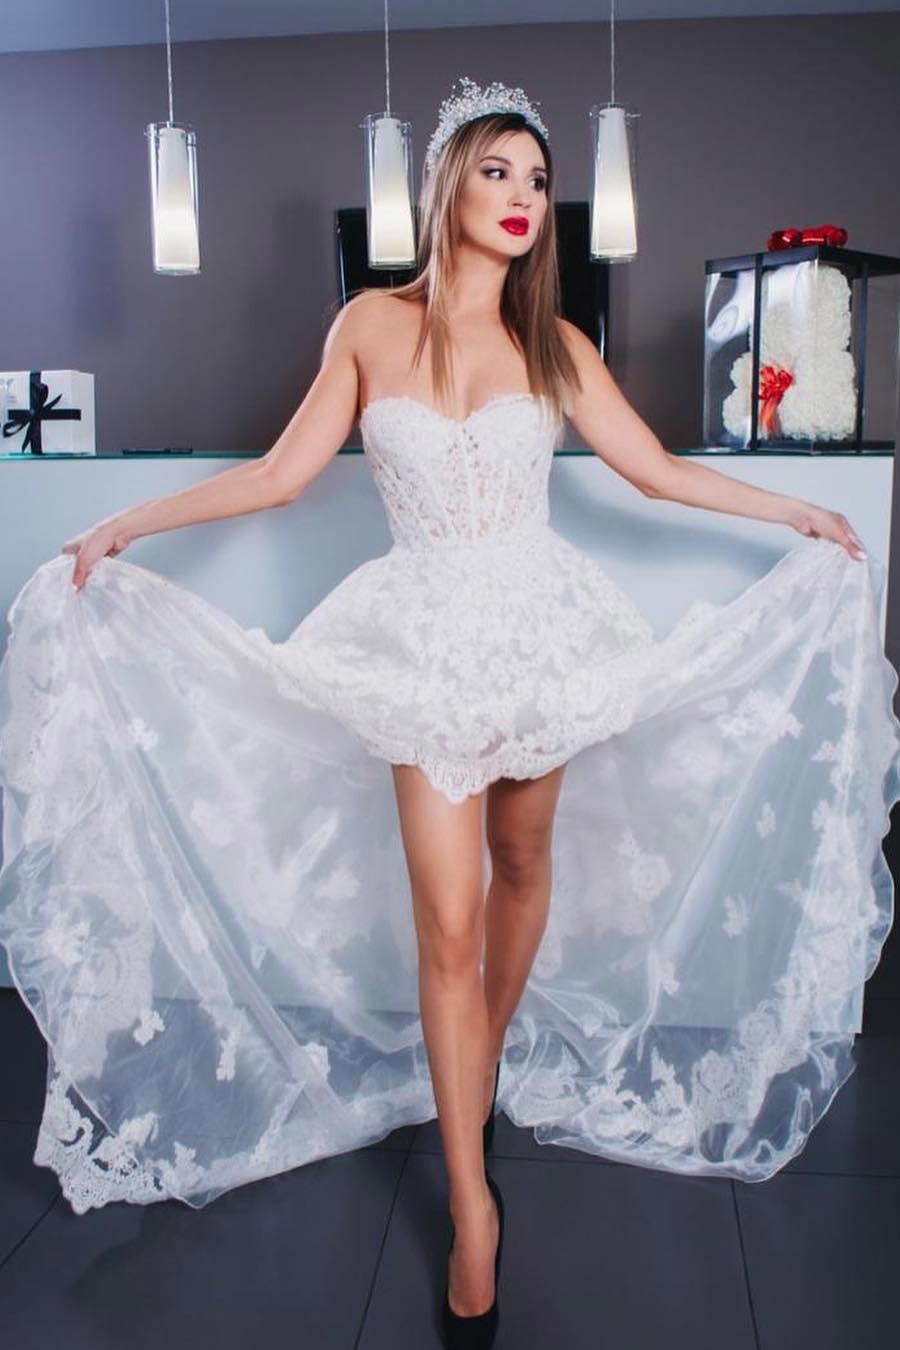 2021 Lace High Low Prom Dresses Appliques Sweetheart Us 159 00 Ldpczd4zax Lovingdresses Vip High Low Prom Dresses Evening Dresses Prom Prom Dresses [ 1350 x 900 Pixel ]